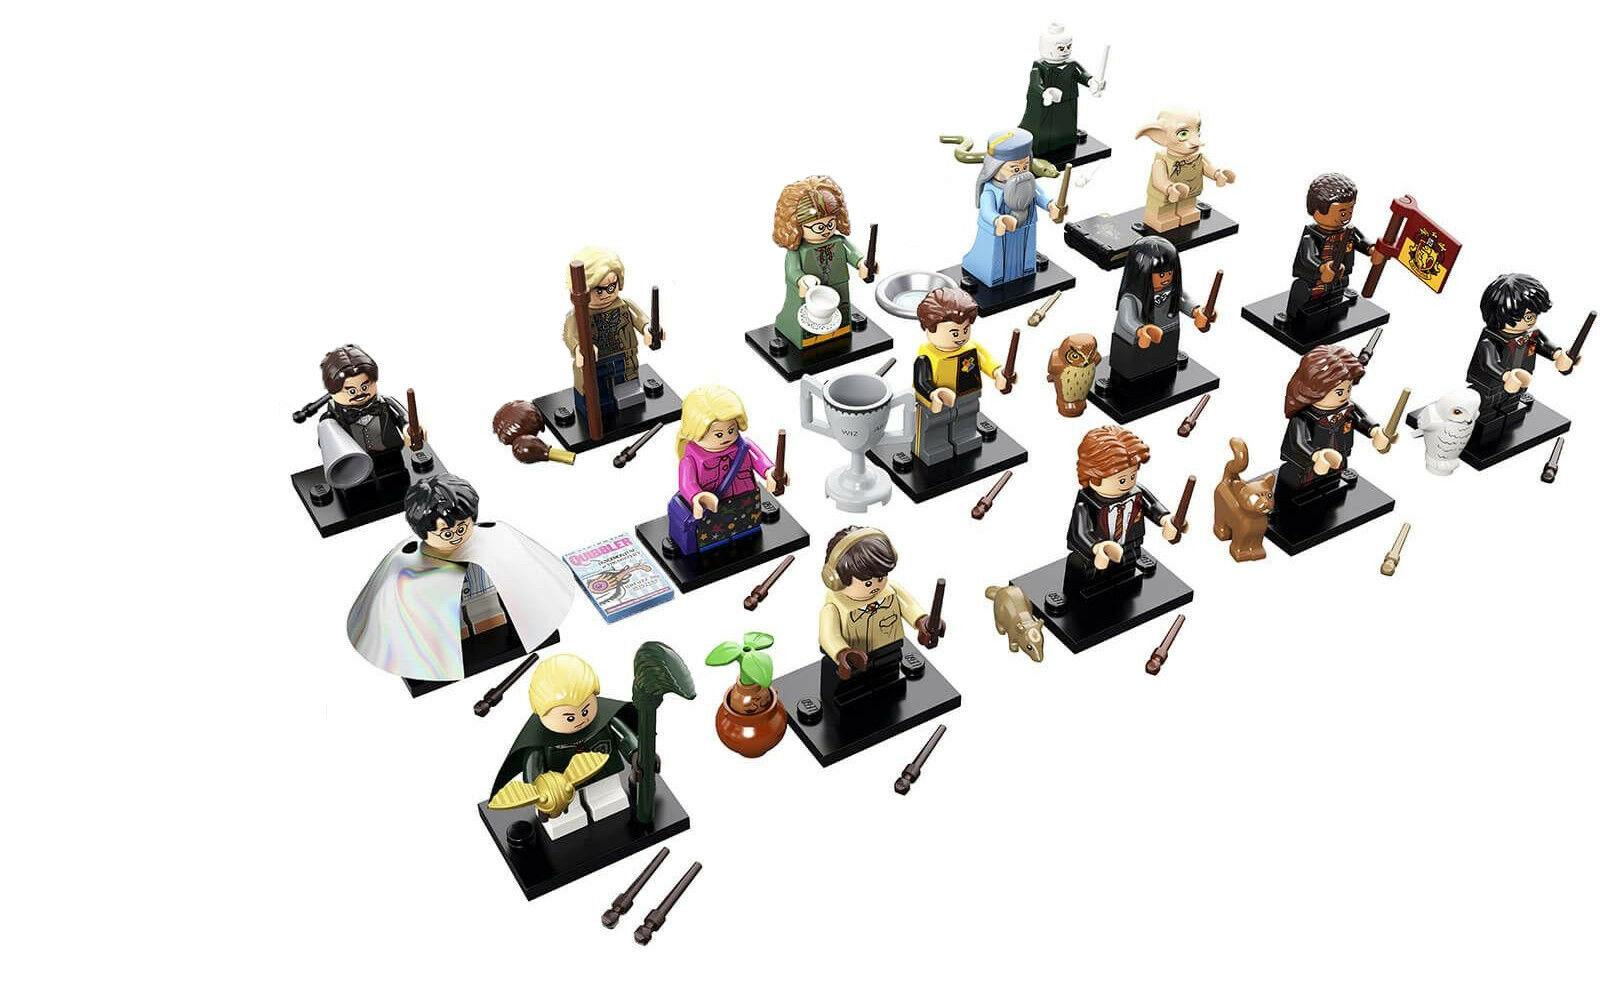 LEGO Harry Potter Collectible Series Minifigures Minifigures Minifigures JK Rowling - Set of 16 (71022) e8ba62